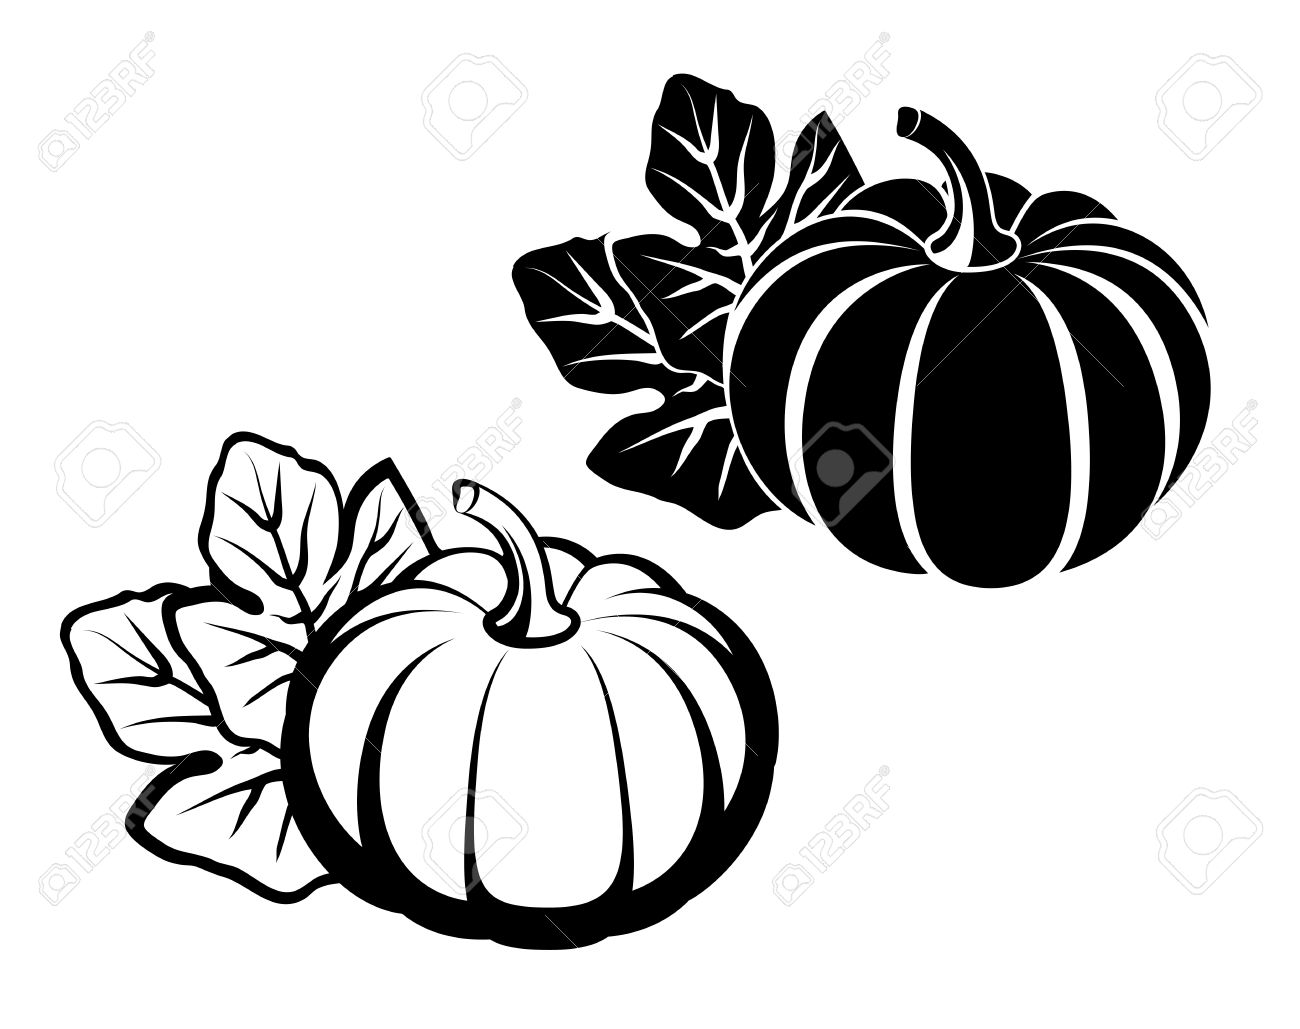 Pumpkins with leaves. Black silhouette on white background. Vector illustration - 47662203